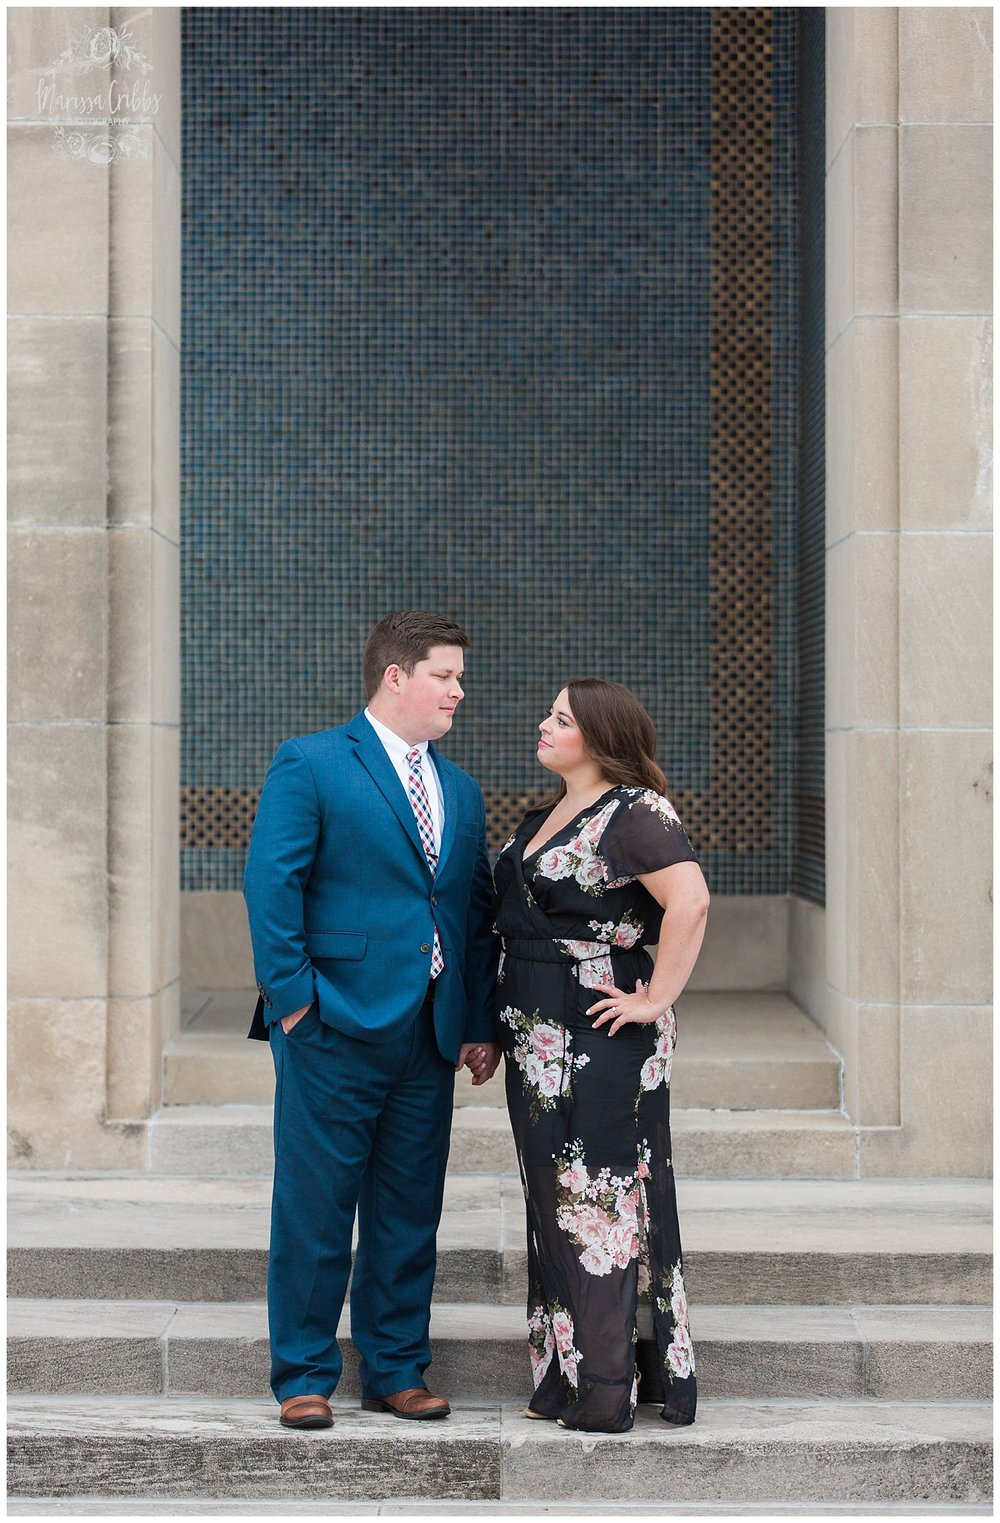 ANDREA & MICHAEL ENGAGEMENT | LIBERTY MEMORIAL ENGAGEMENT PHOTOGRAPHY | MARISSA CRIBBS PHOTOGRAPHY_3038.jpg